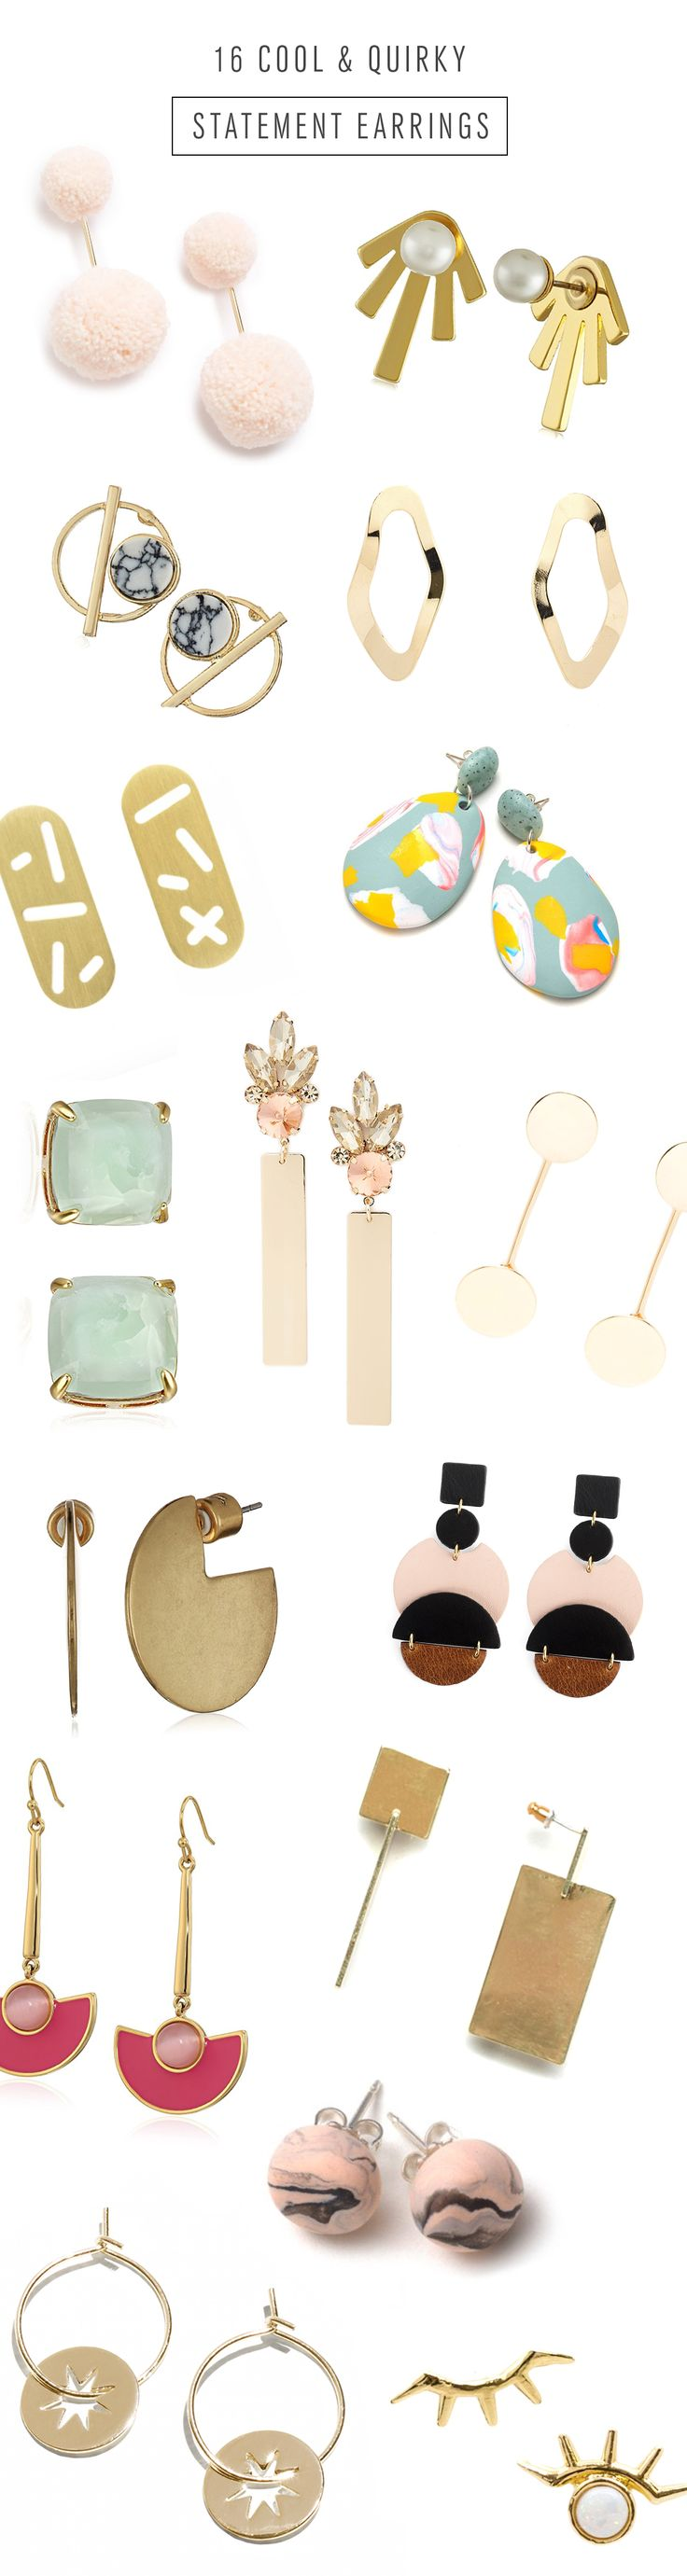 Putting together all of our favorite jewelry this year. First up, the most cool and quirky Statement Earrings for this winter!